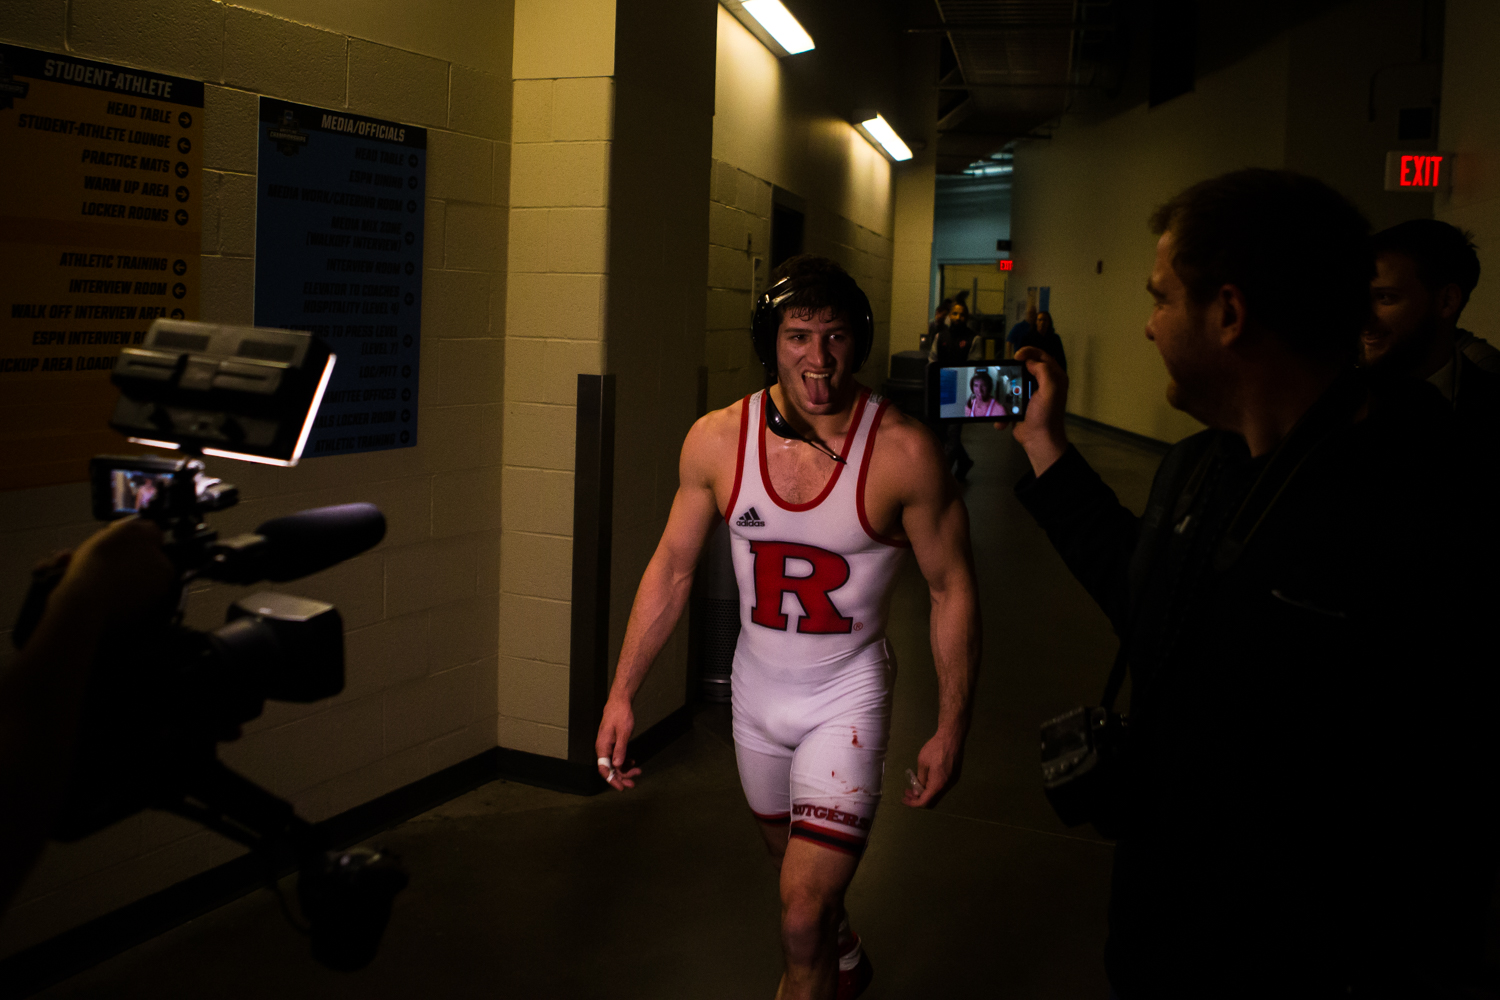 Rutgers%27+Anthony+Ashnault+celebrates+his+first-place+finish+at+149-pounds+during+the+final+session+of+the+2019+NCAA+D1+Wrestling+Championships+at+PPG+Paints+Arena+in+Pittsburgh%2C+PA+on+Saturday%2C+March+23%2C+2019.